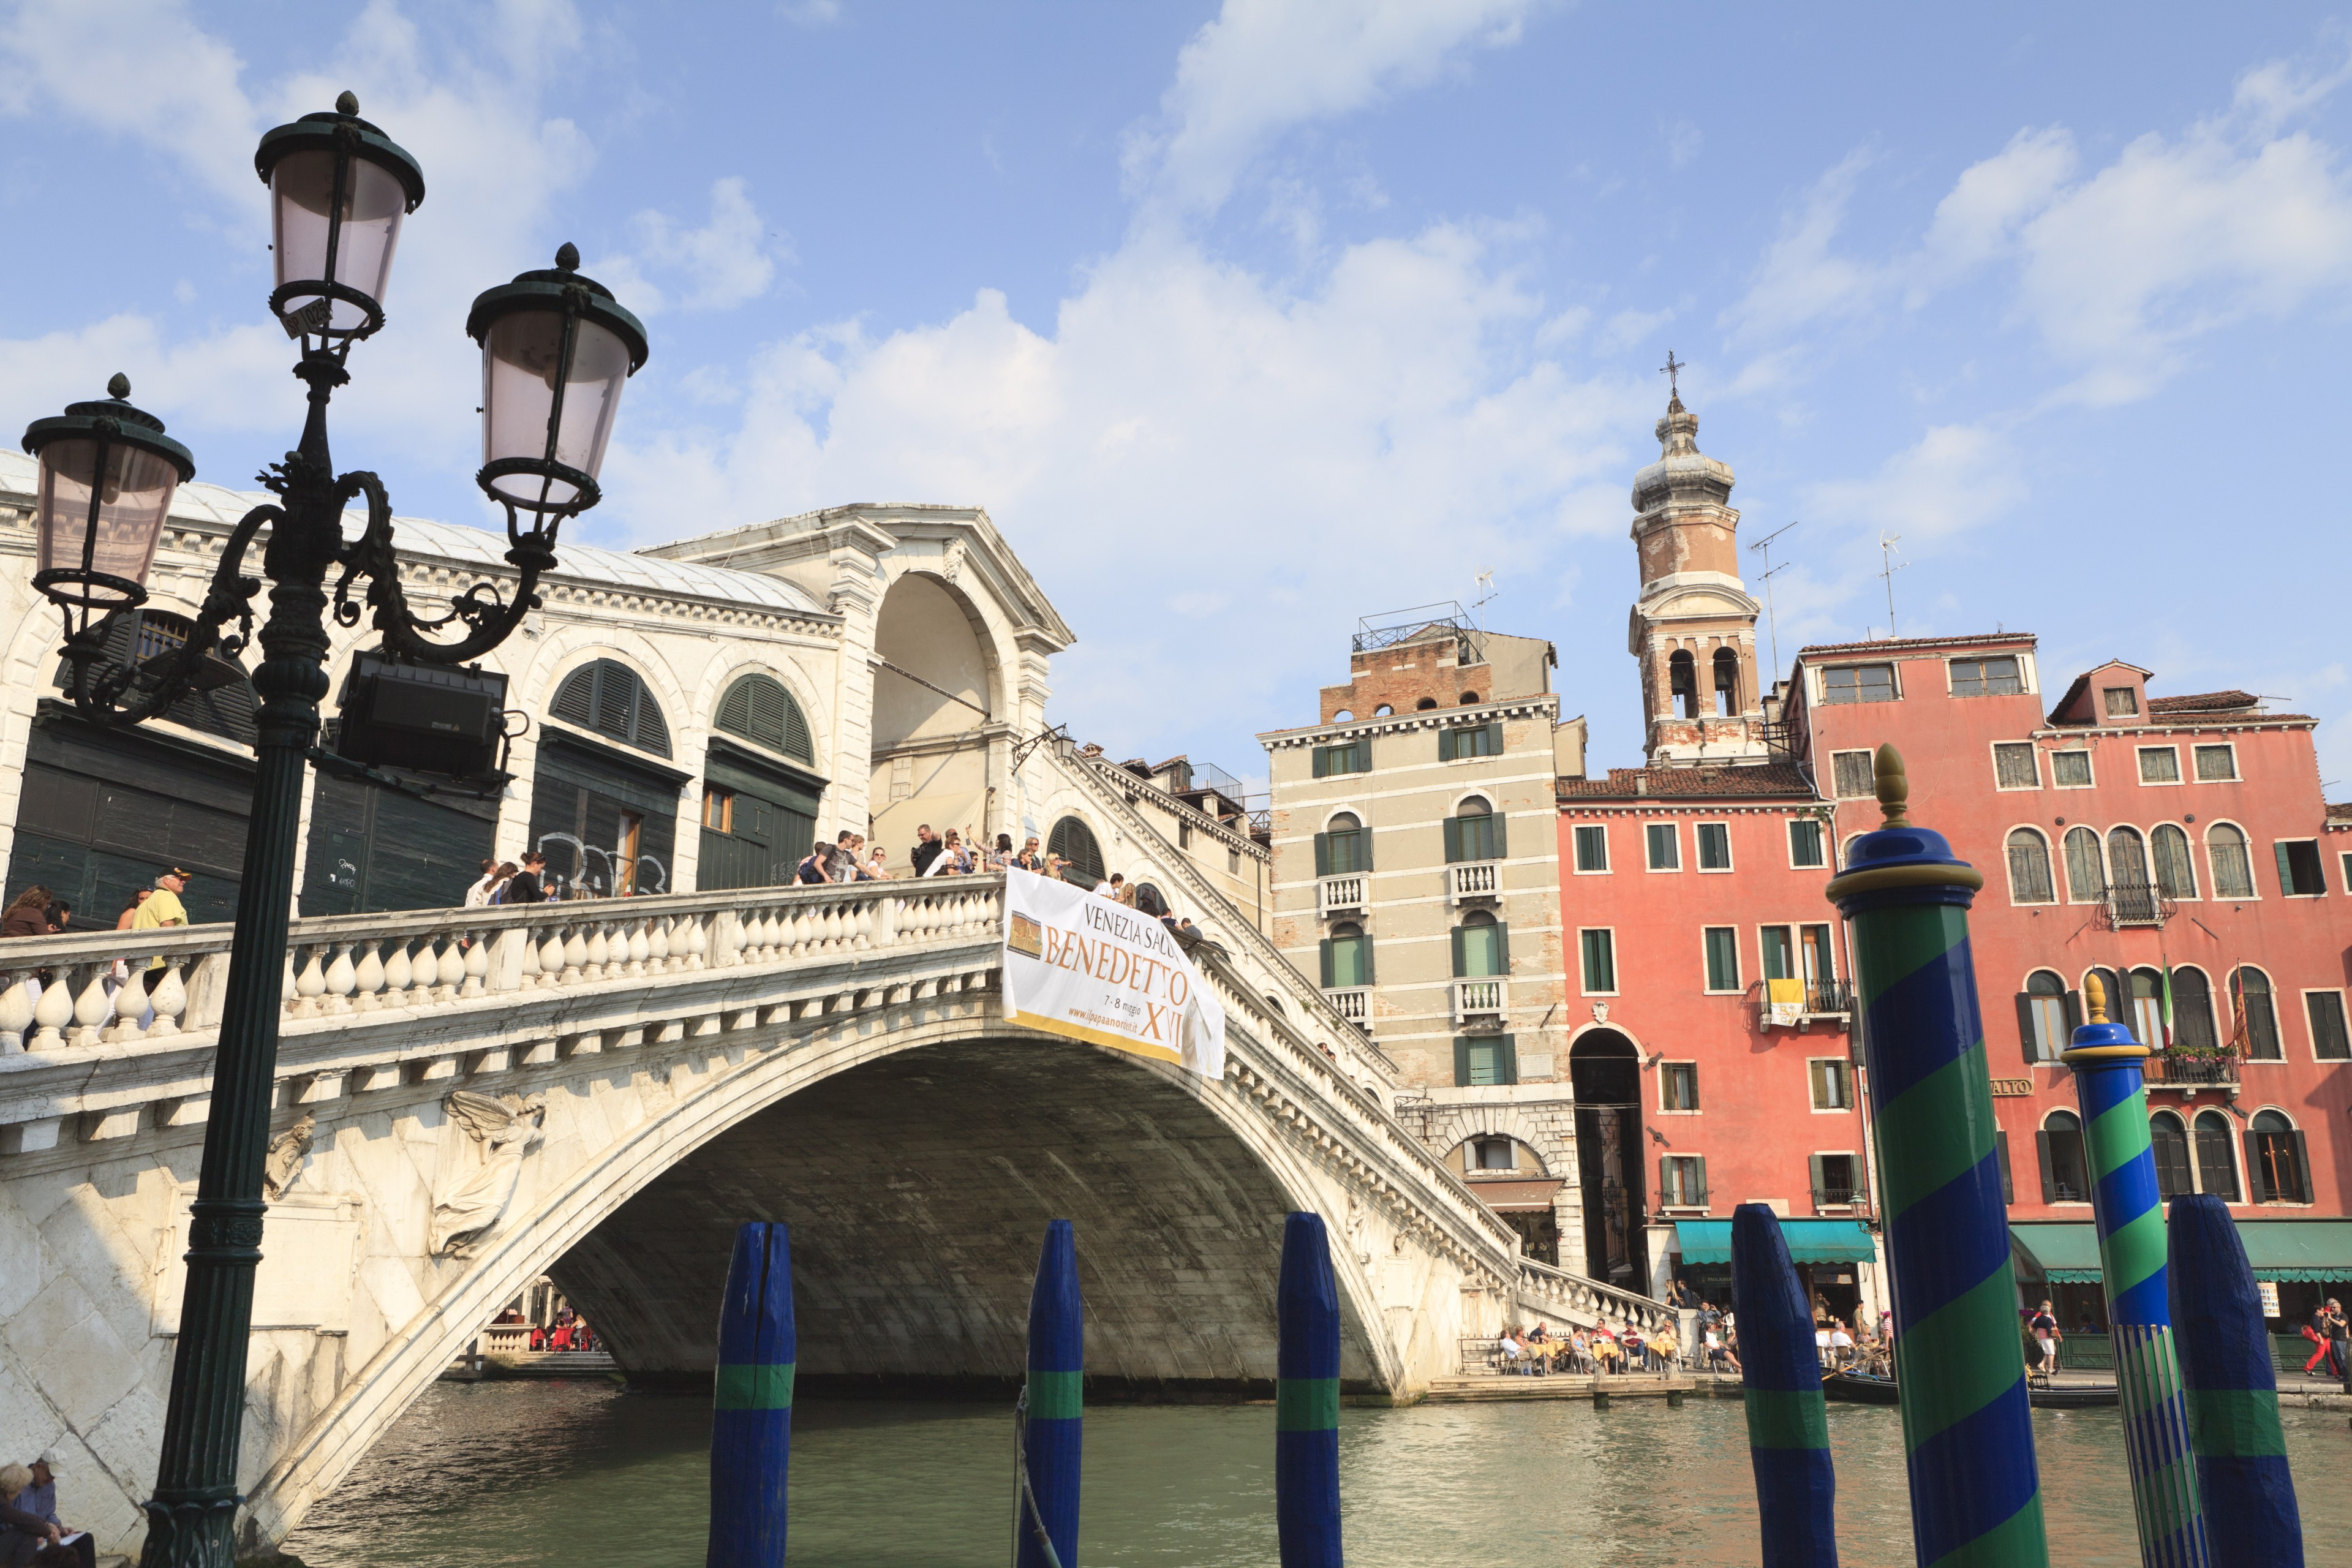 Rialto Bridge-Grand Canal Venice Italy